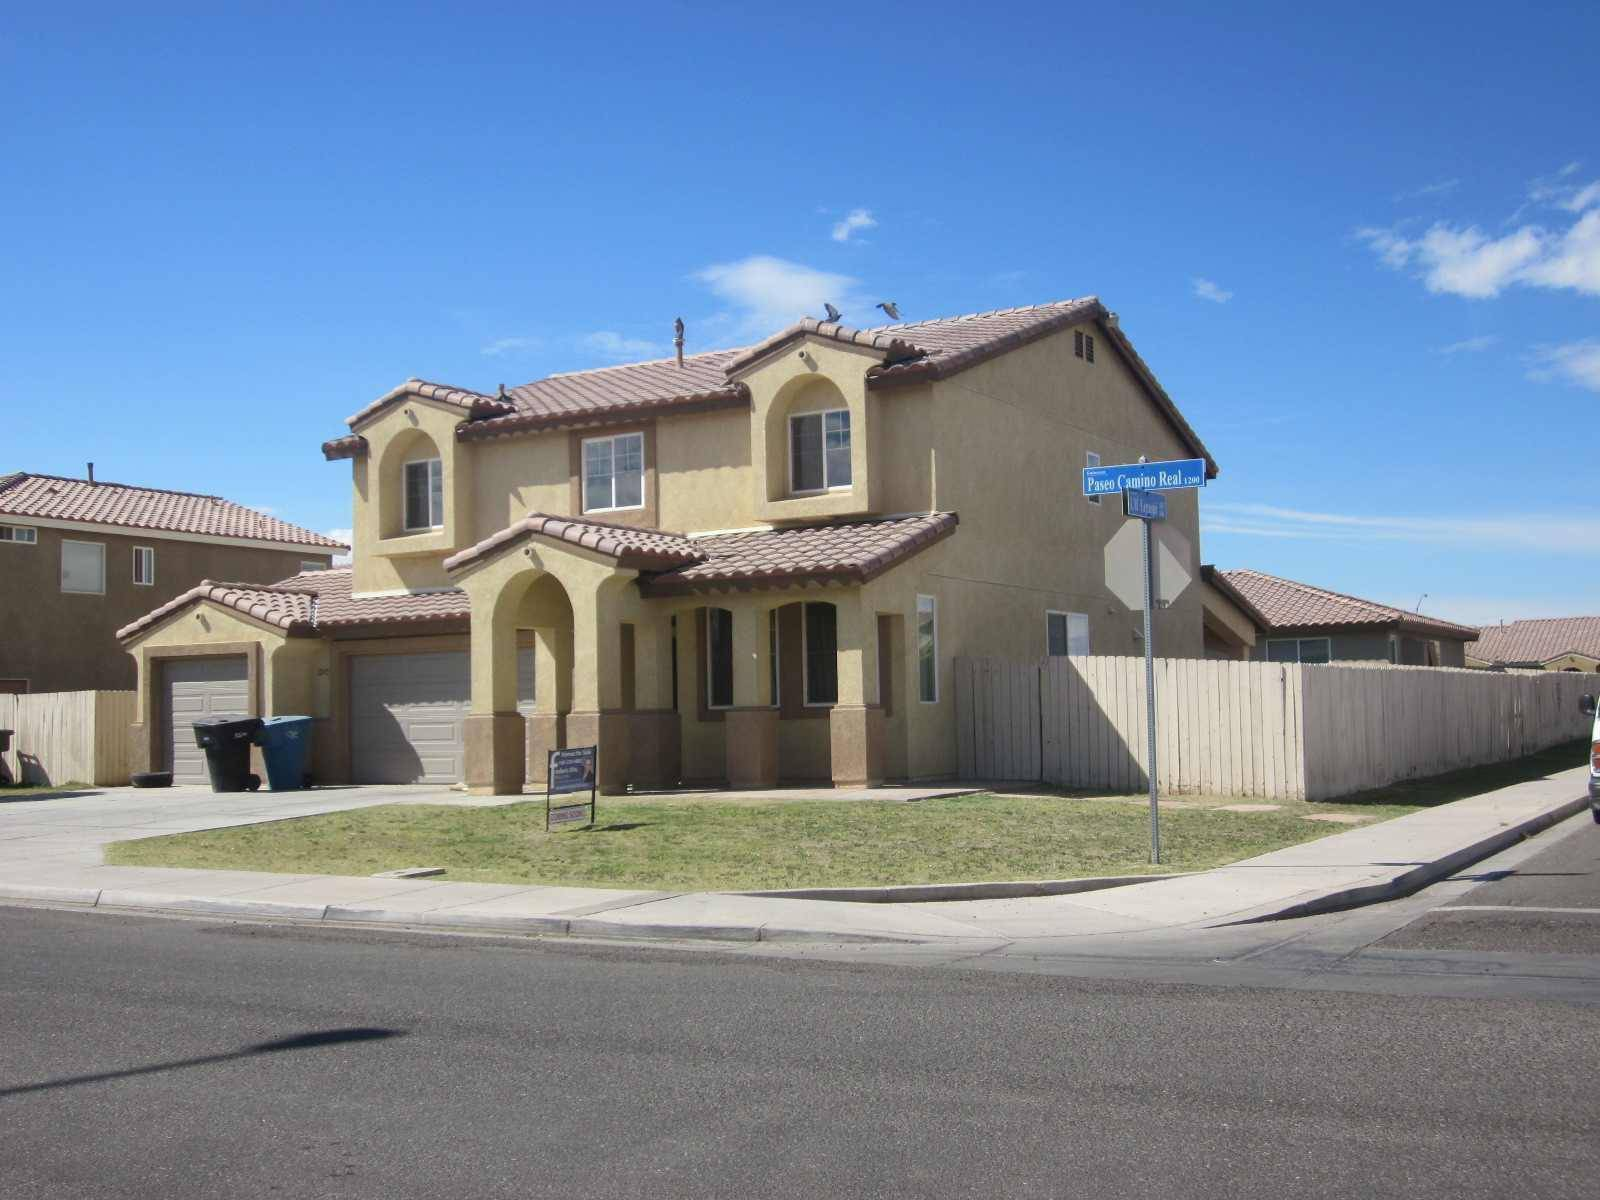 Calexico (CA) United States  city photos gallery : House for Sale Calexico, California, United States Corner lot two ...